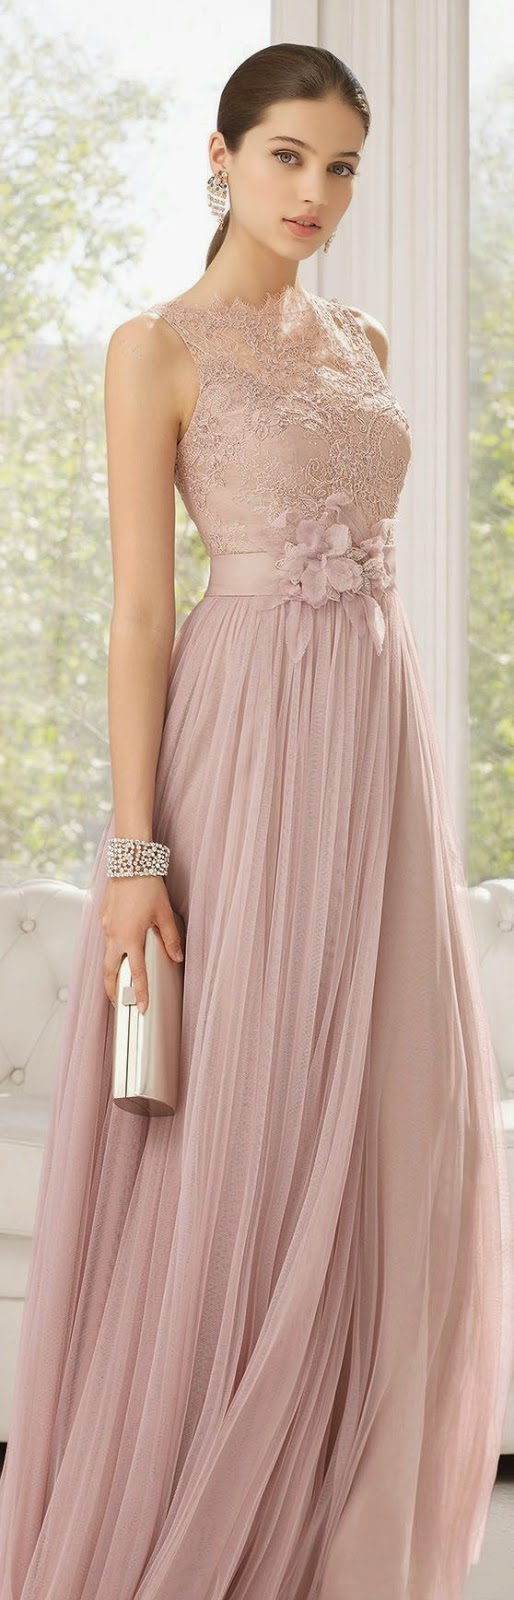 Style Know Hows: Wedding dress | Rochii | Pinterest | Vestiditos ...